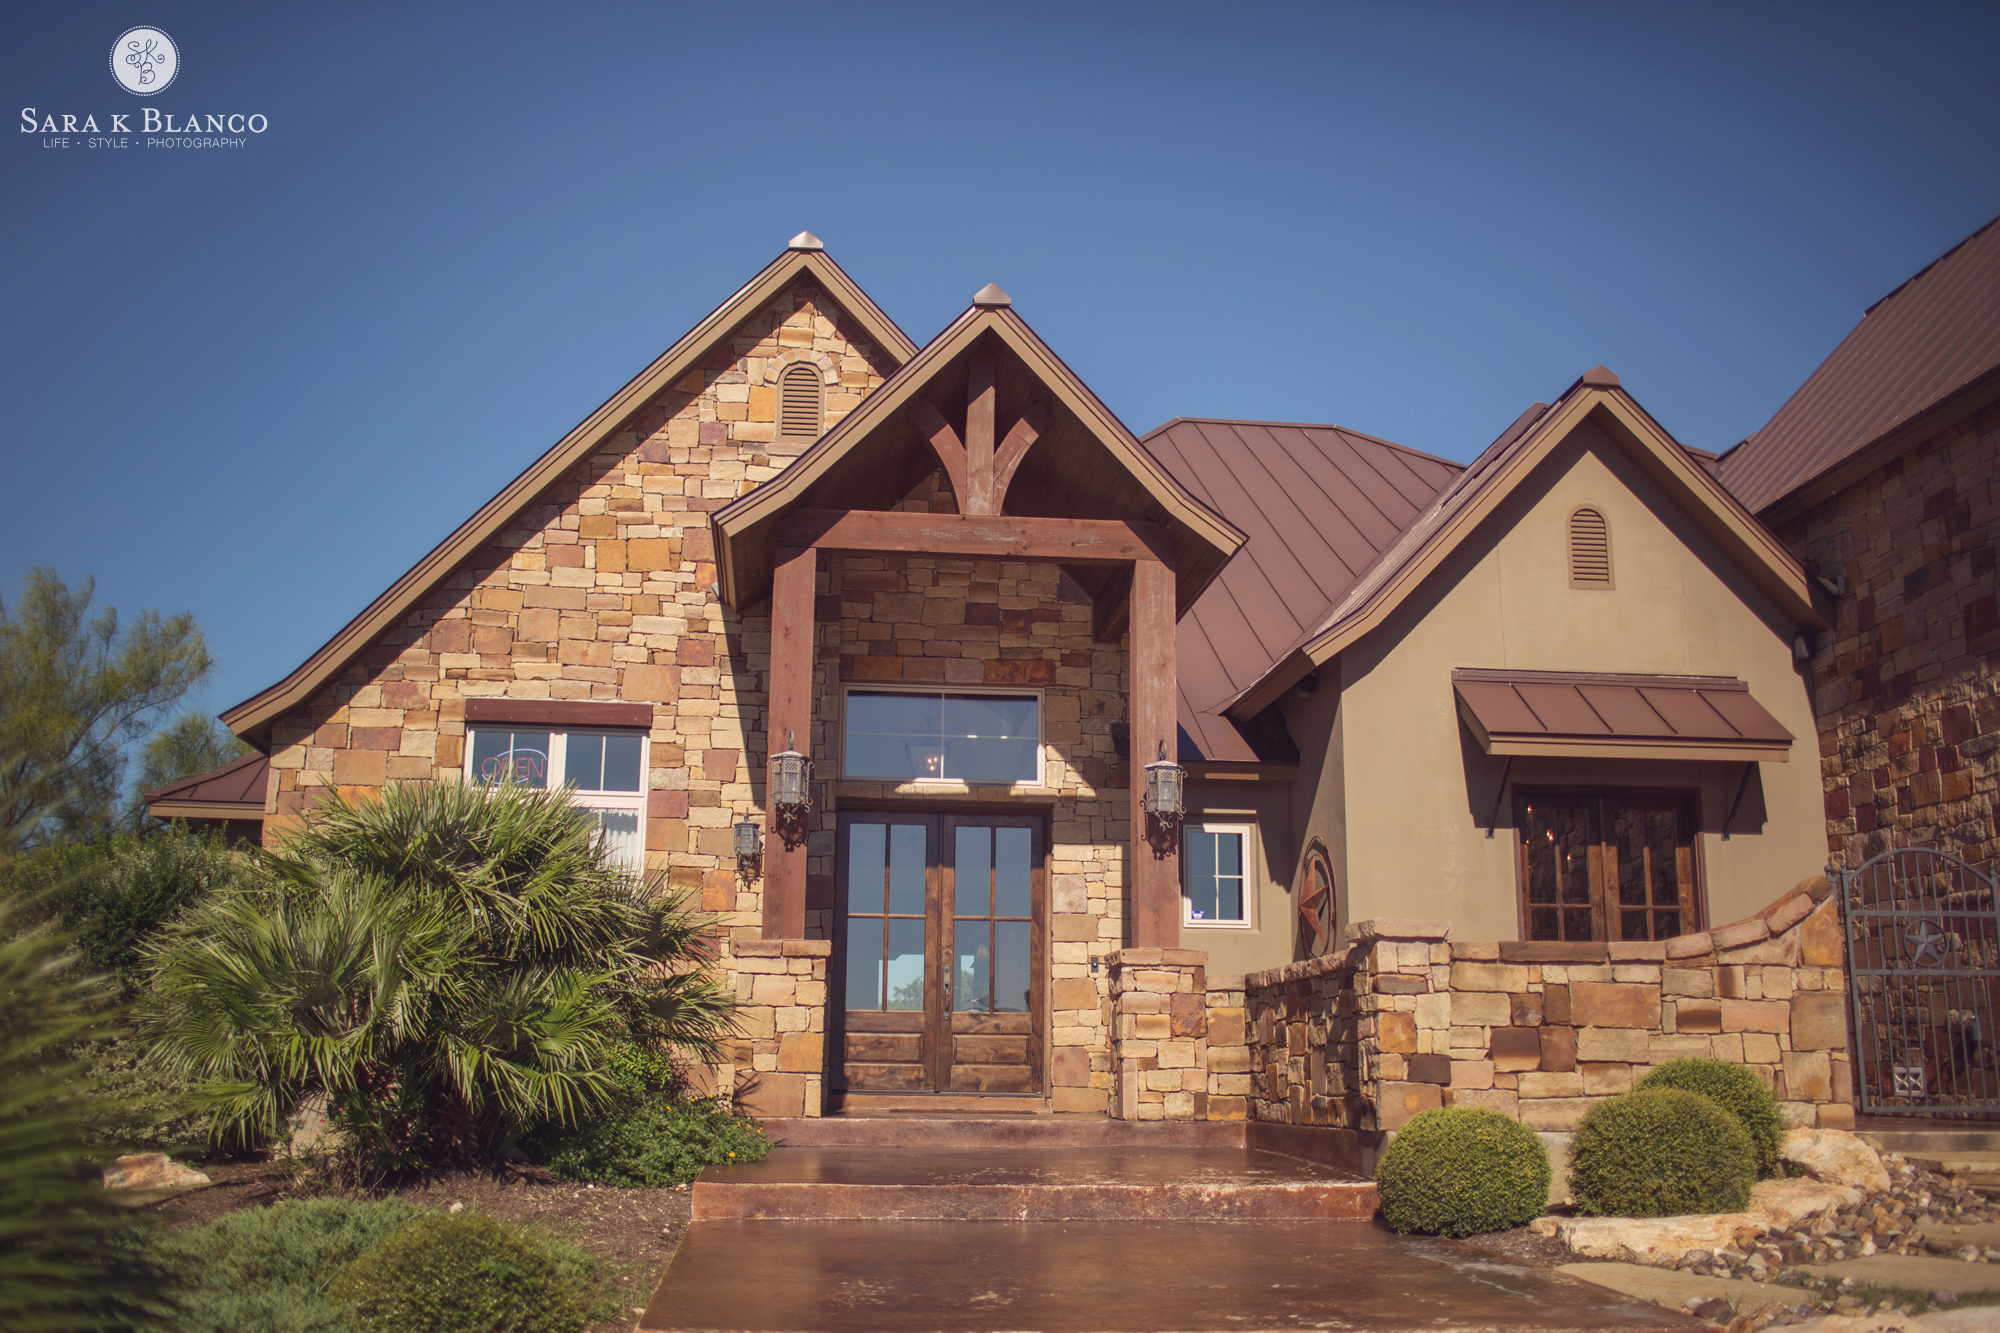 Best custom home builder in san antonio - When Looking For Our Place In The World We Tend To Look For The Best Area To Nest A Harbor Where We Find Shelter From The Storm And A Place To